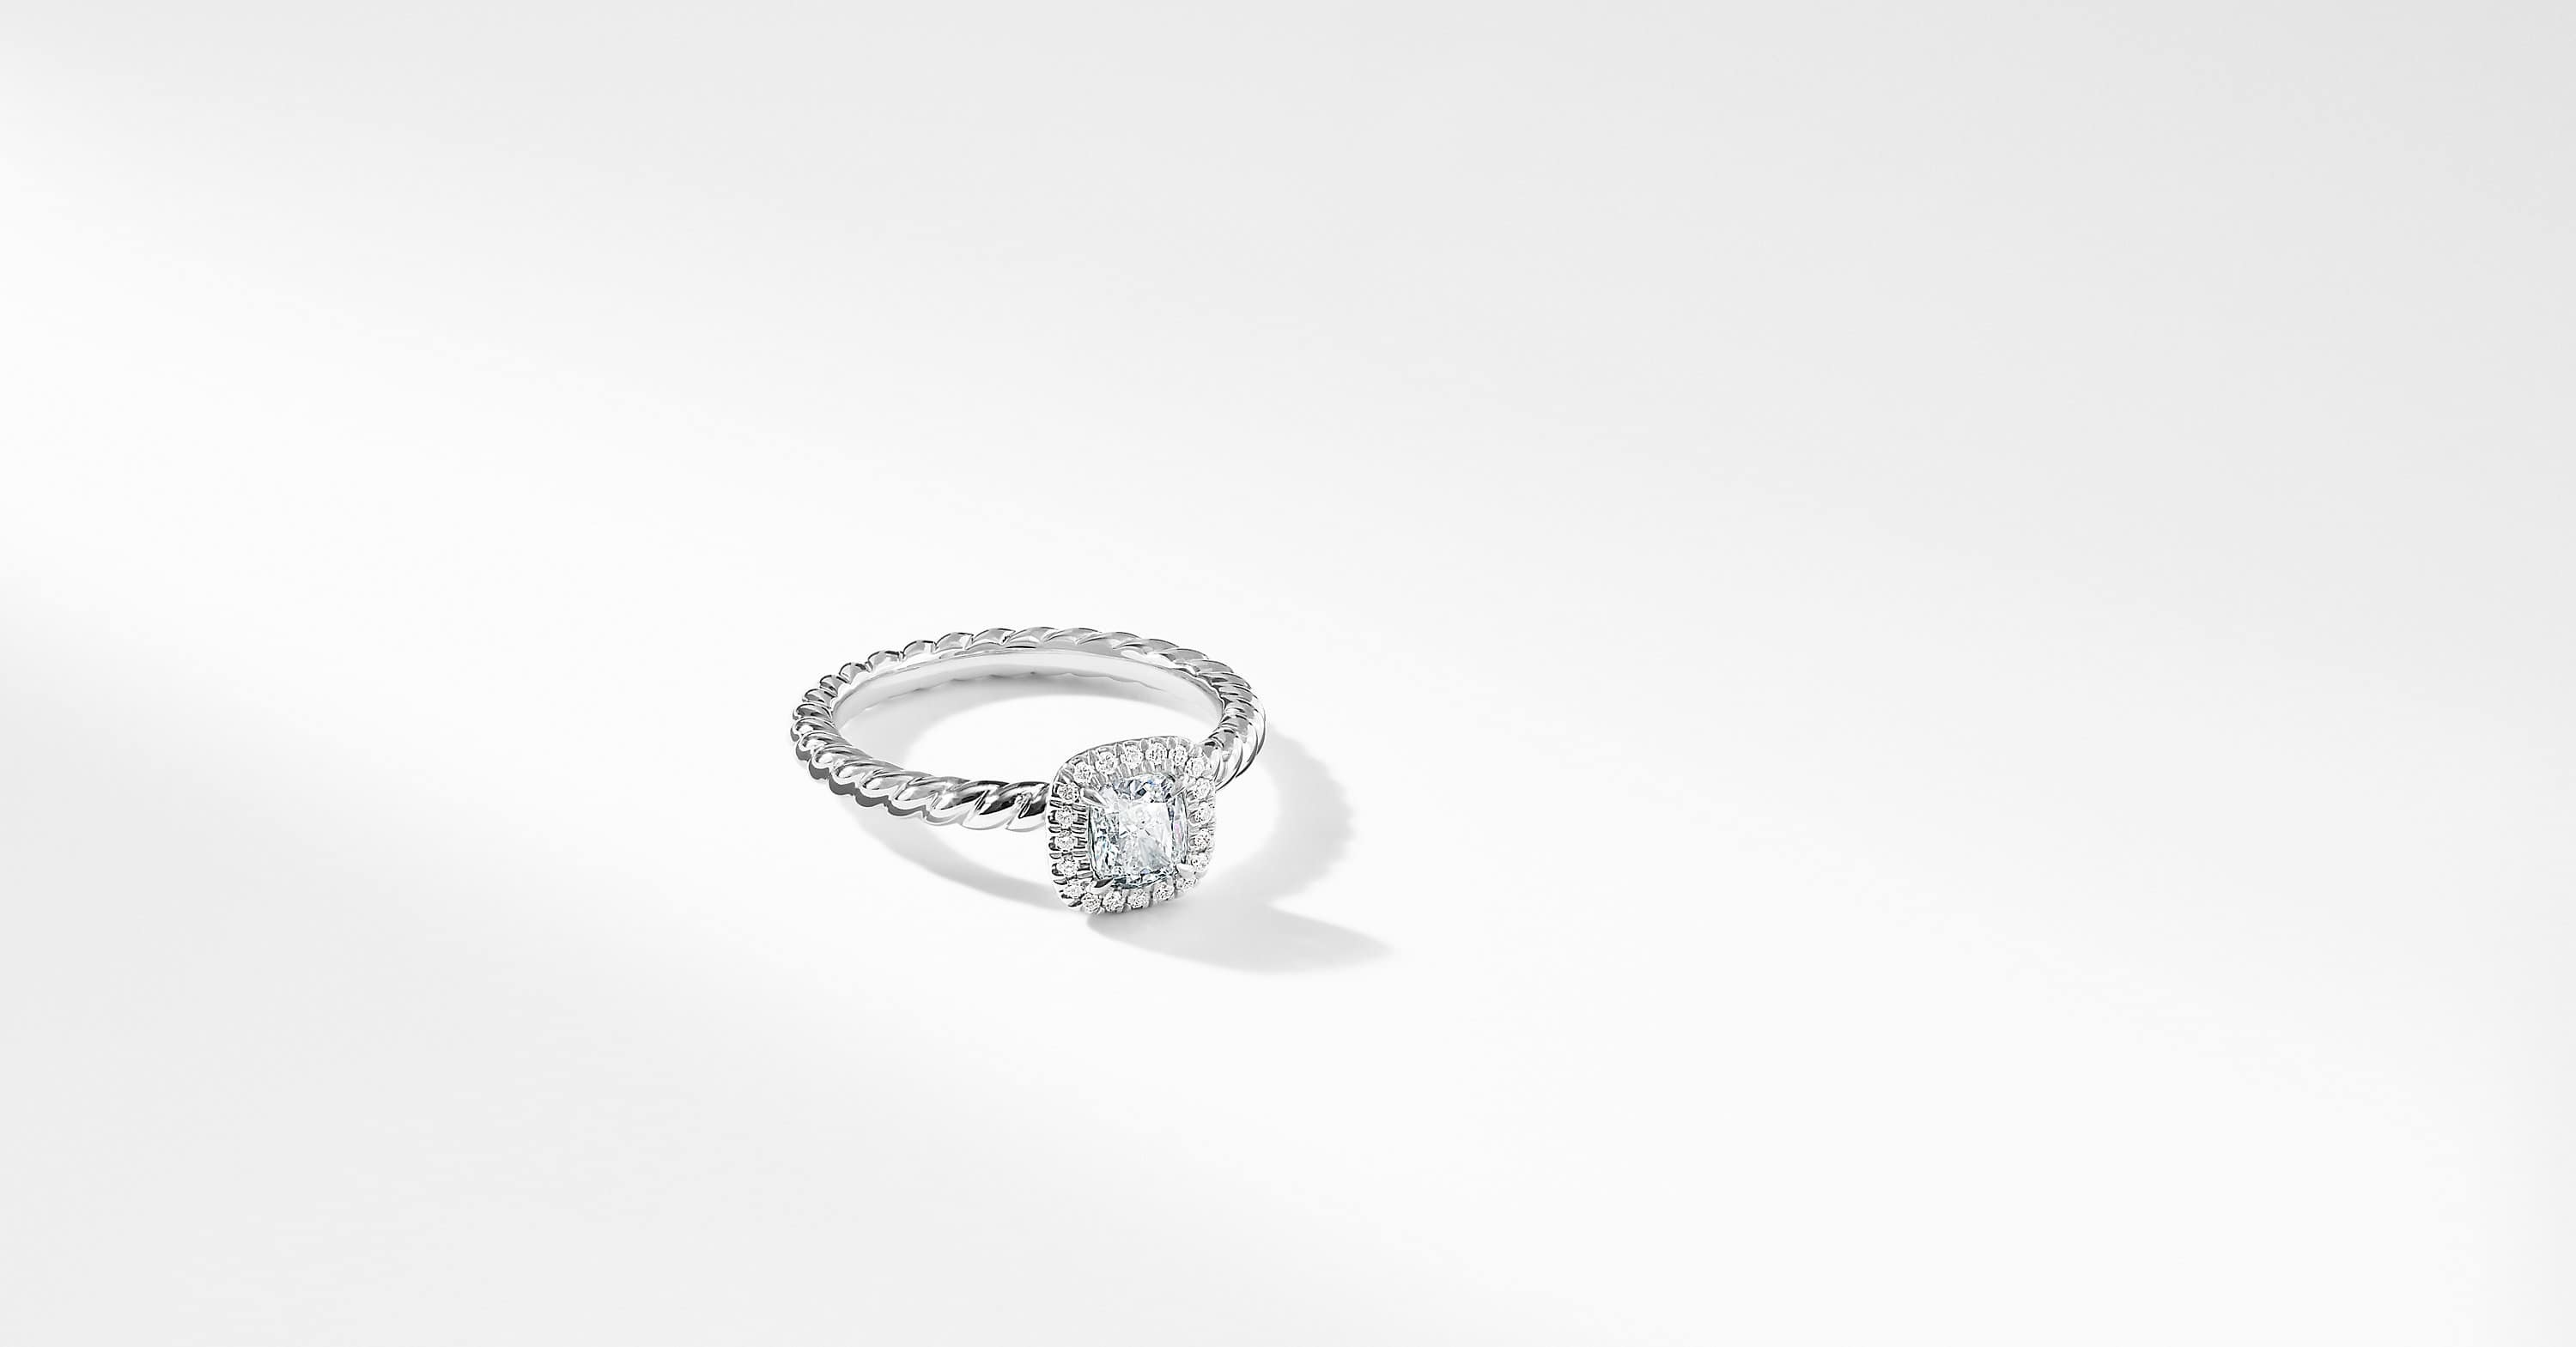 DY Capri Petite Engagement Ring in Platinum, Cushion